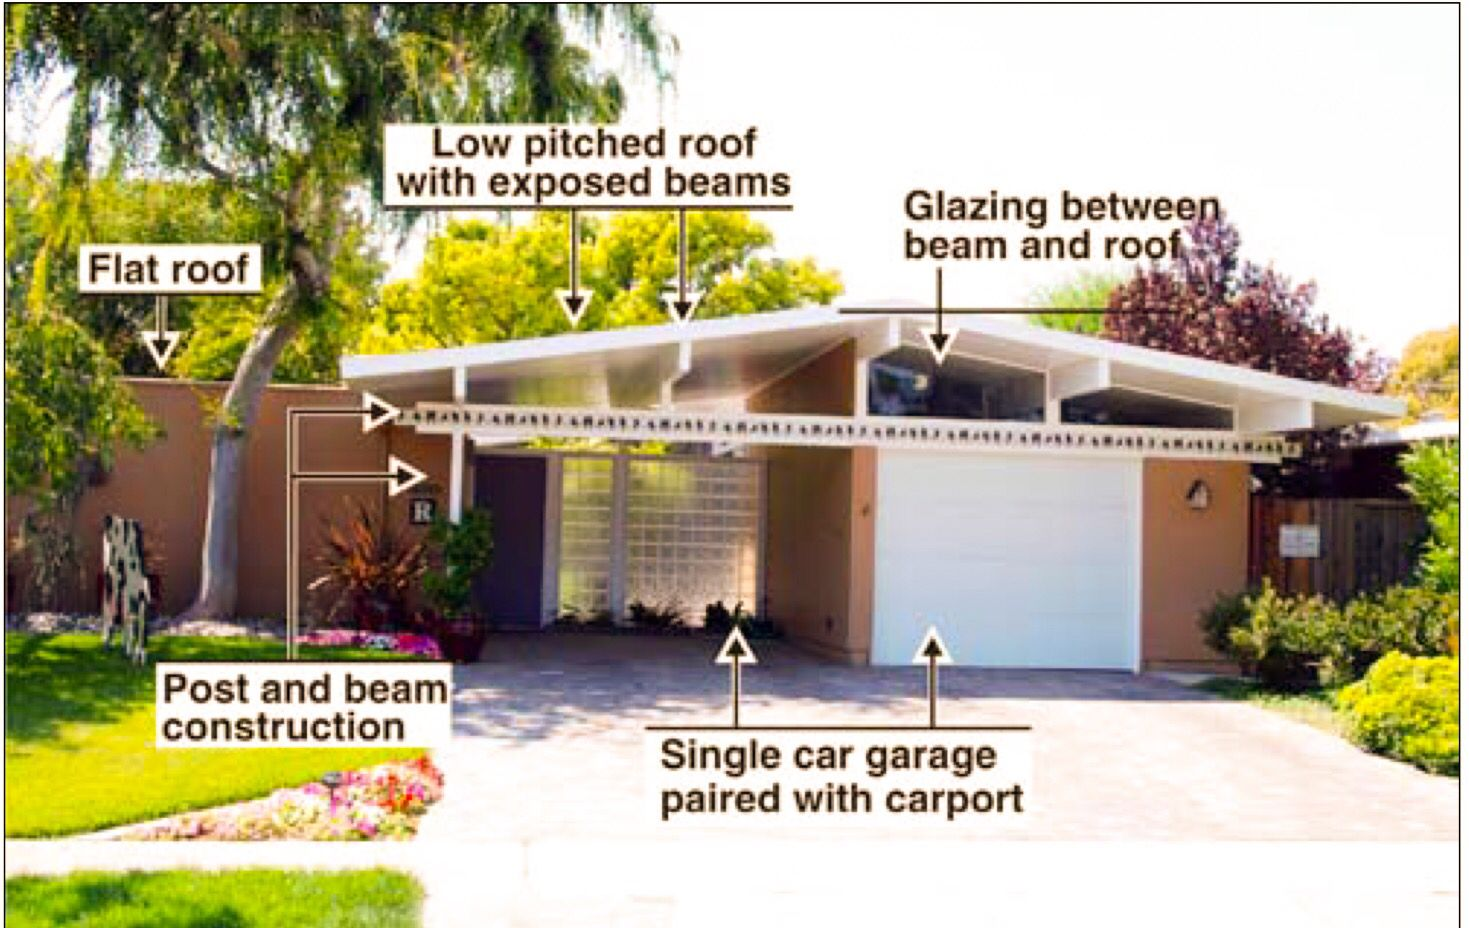 typical eichler features 1 flat roof low pitched roof with typical eichler features flat roof low pitched roof with exposed beams glazing between beam and roof post and beam construction single car garage